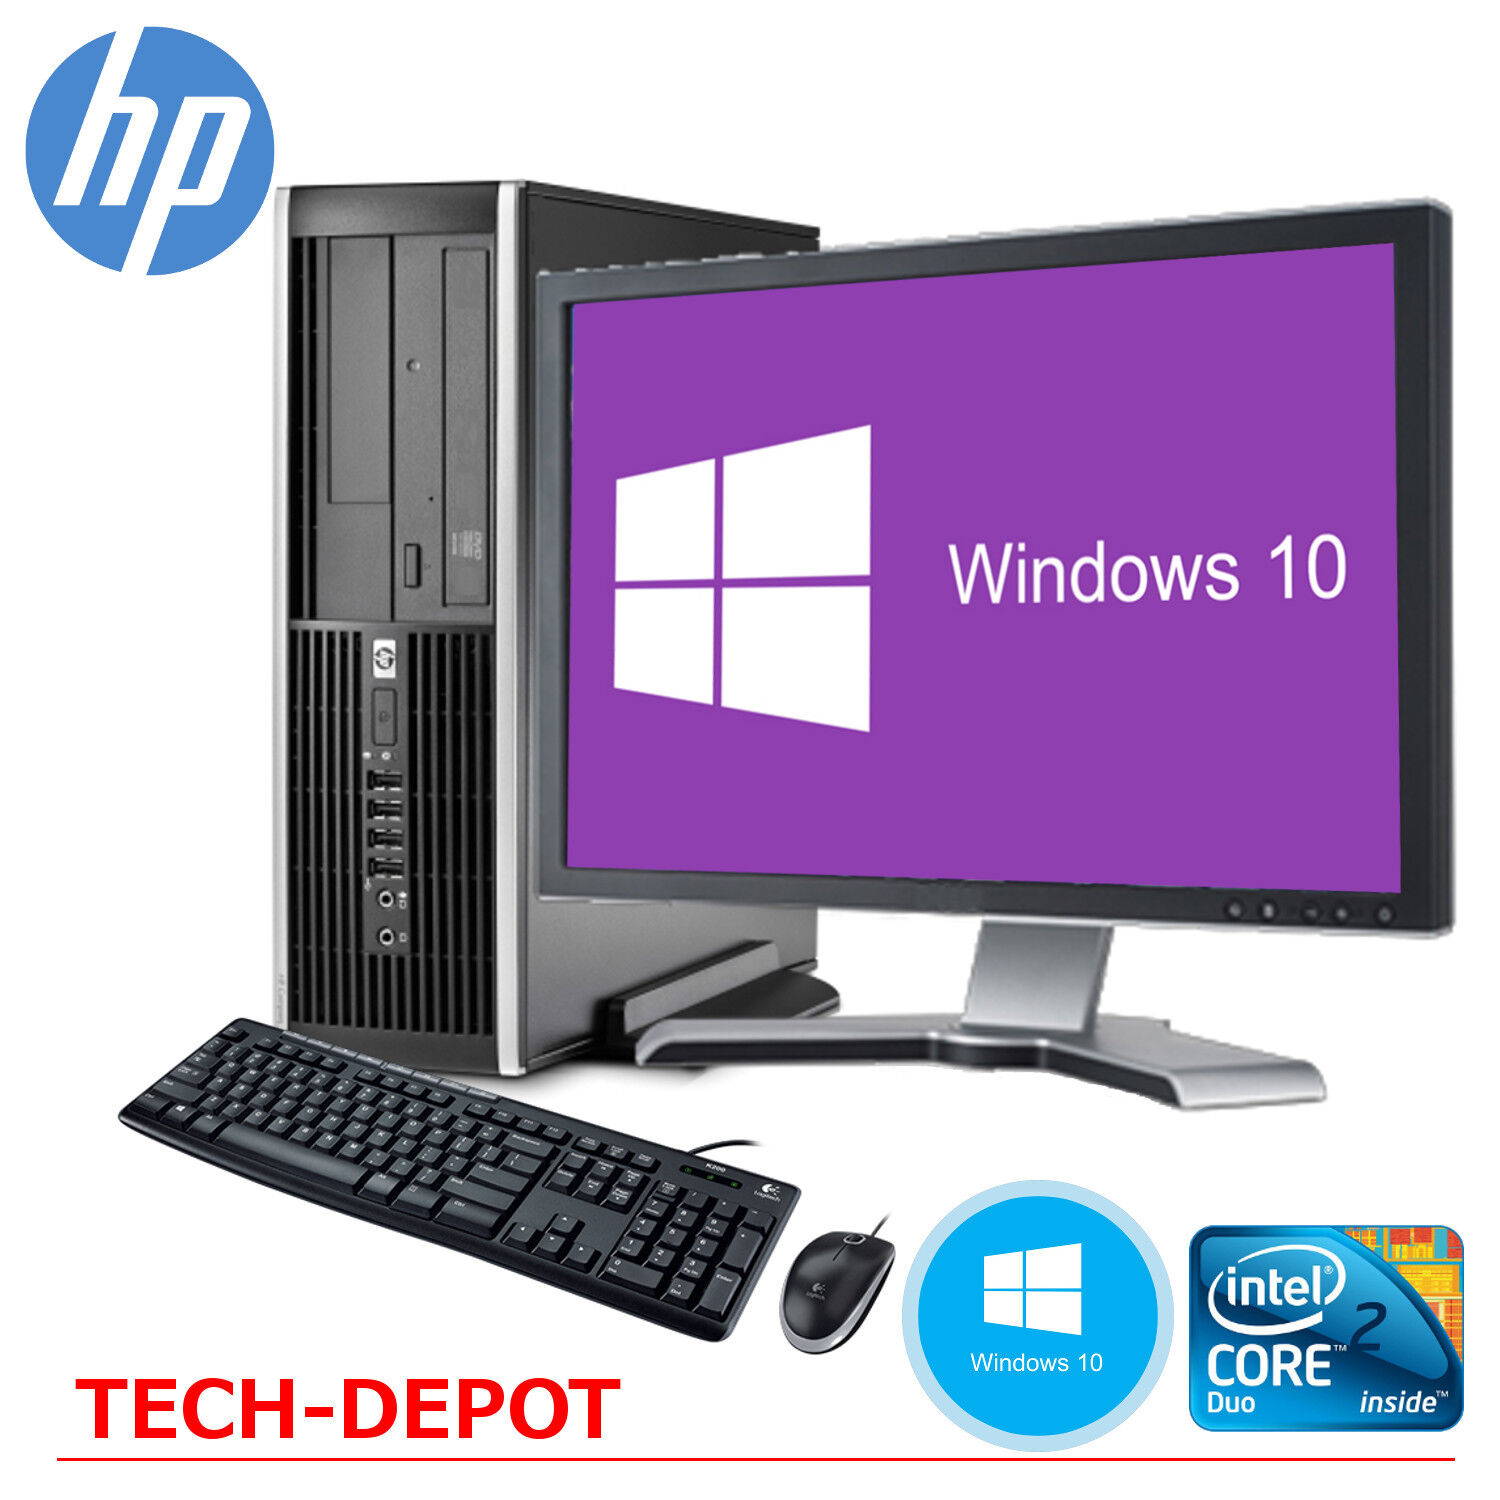 hp desktop computer pc core 2 duo 4gb 250gb hd windows 10 w 19 lcd monitor wifi. Black Bedroom Furniture Sets. Home Design Ideas